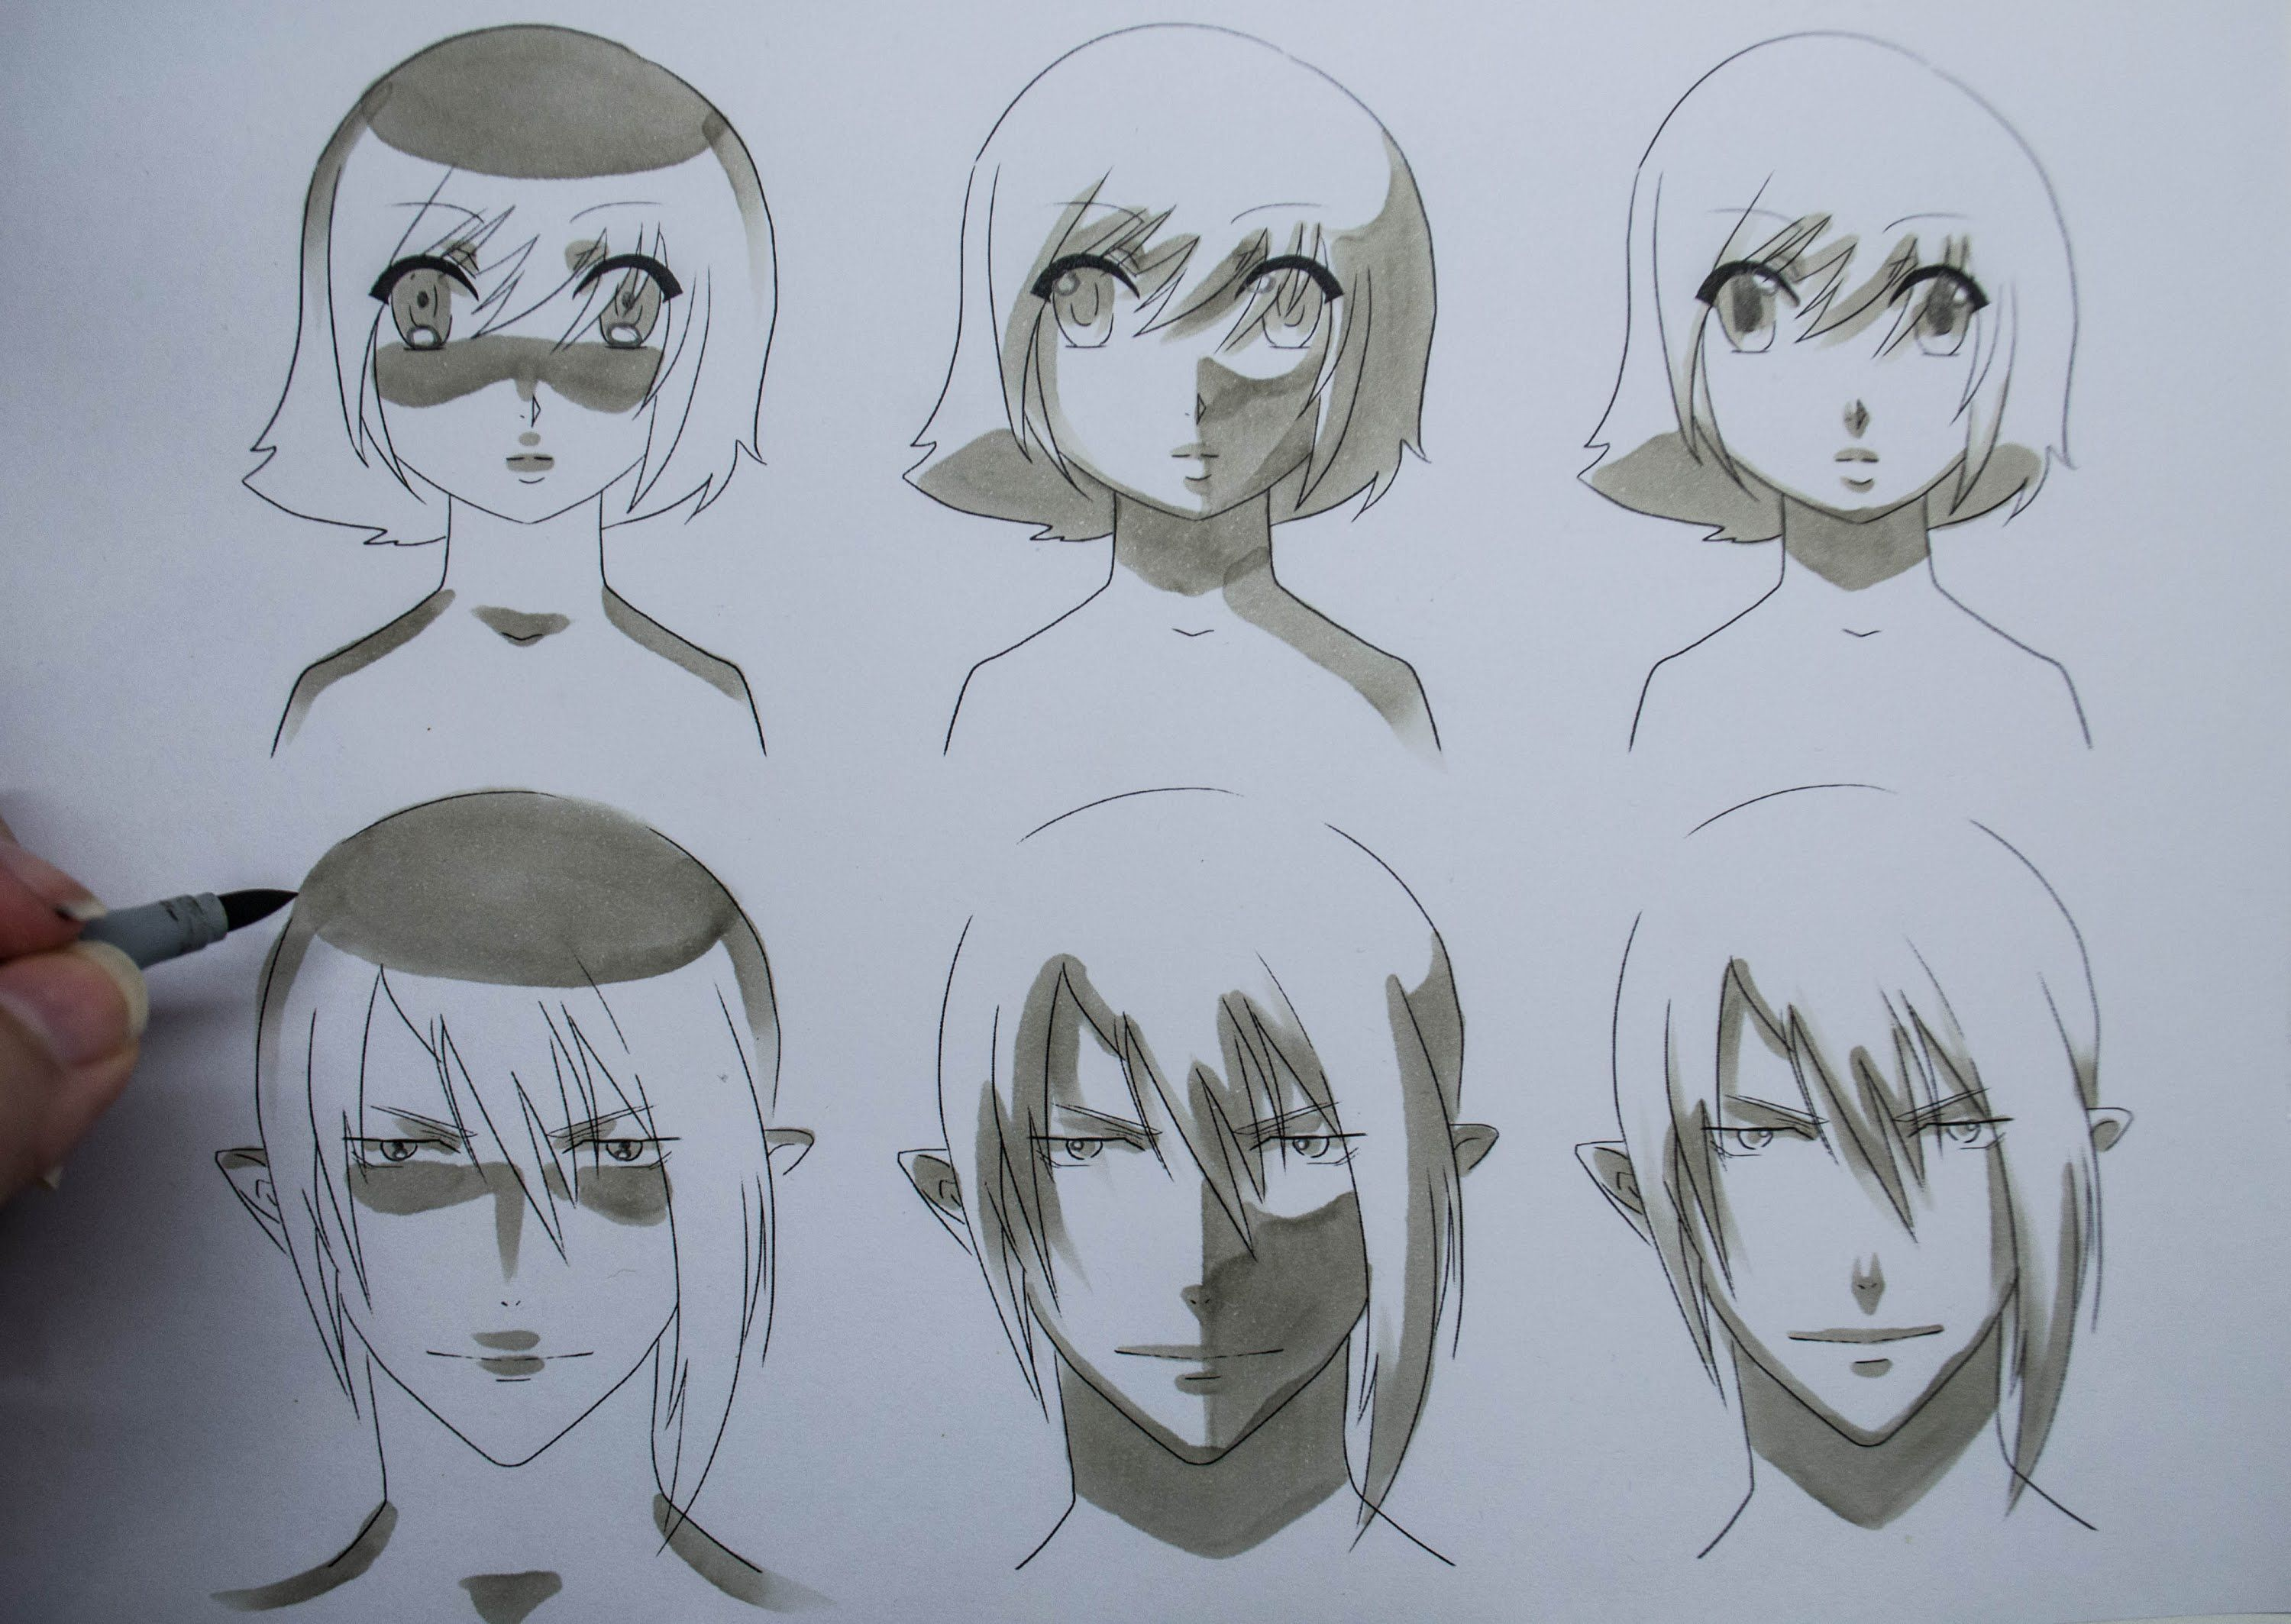 How To Draw Manga Shading Manga Faces Three Different Ways Manga Drawing Drawing People Drawings